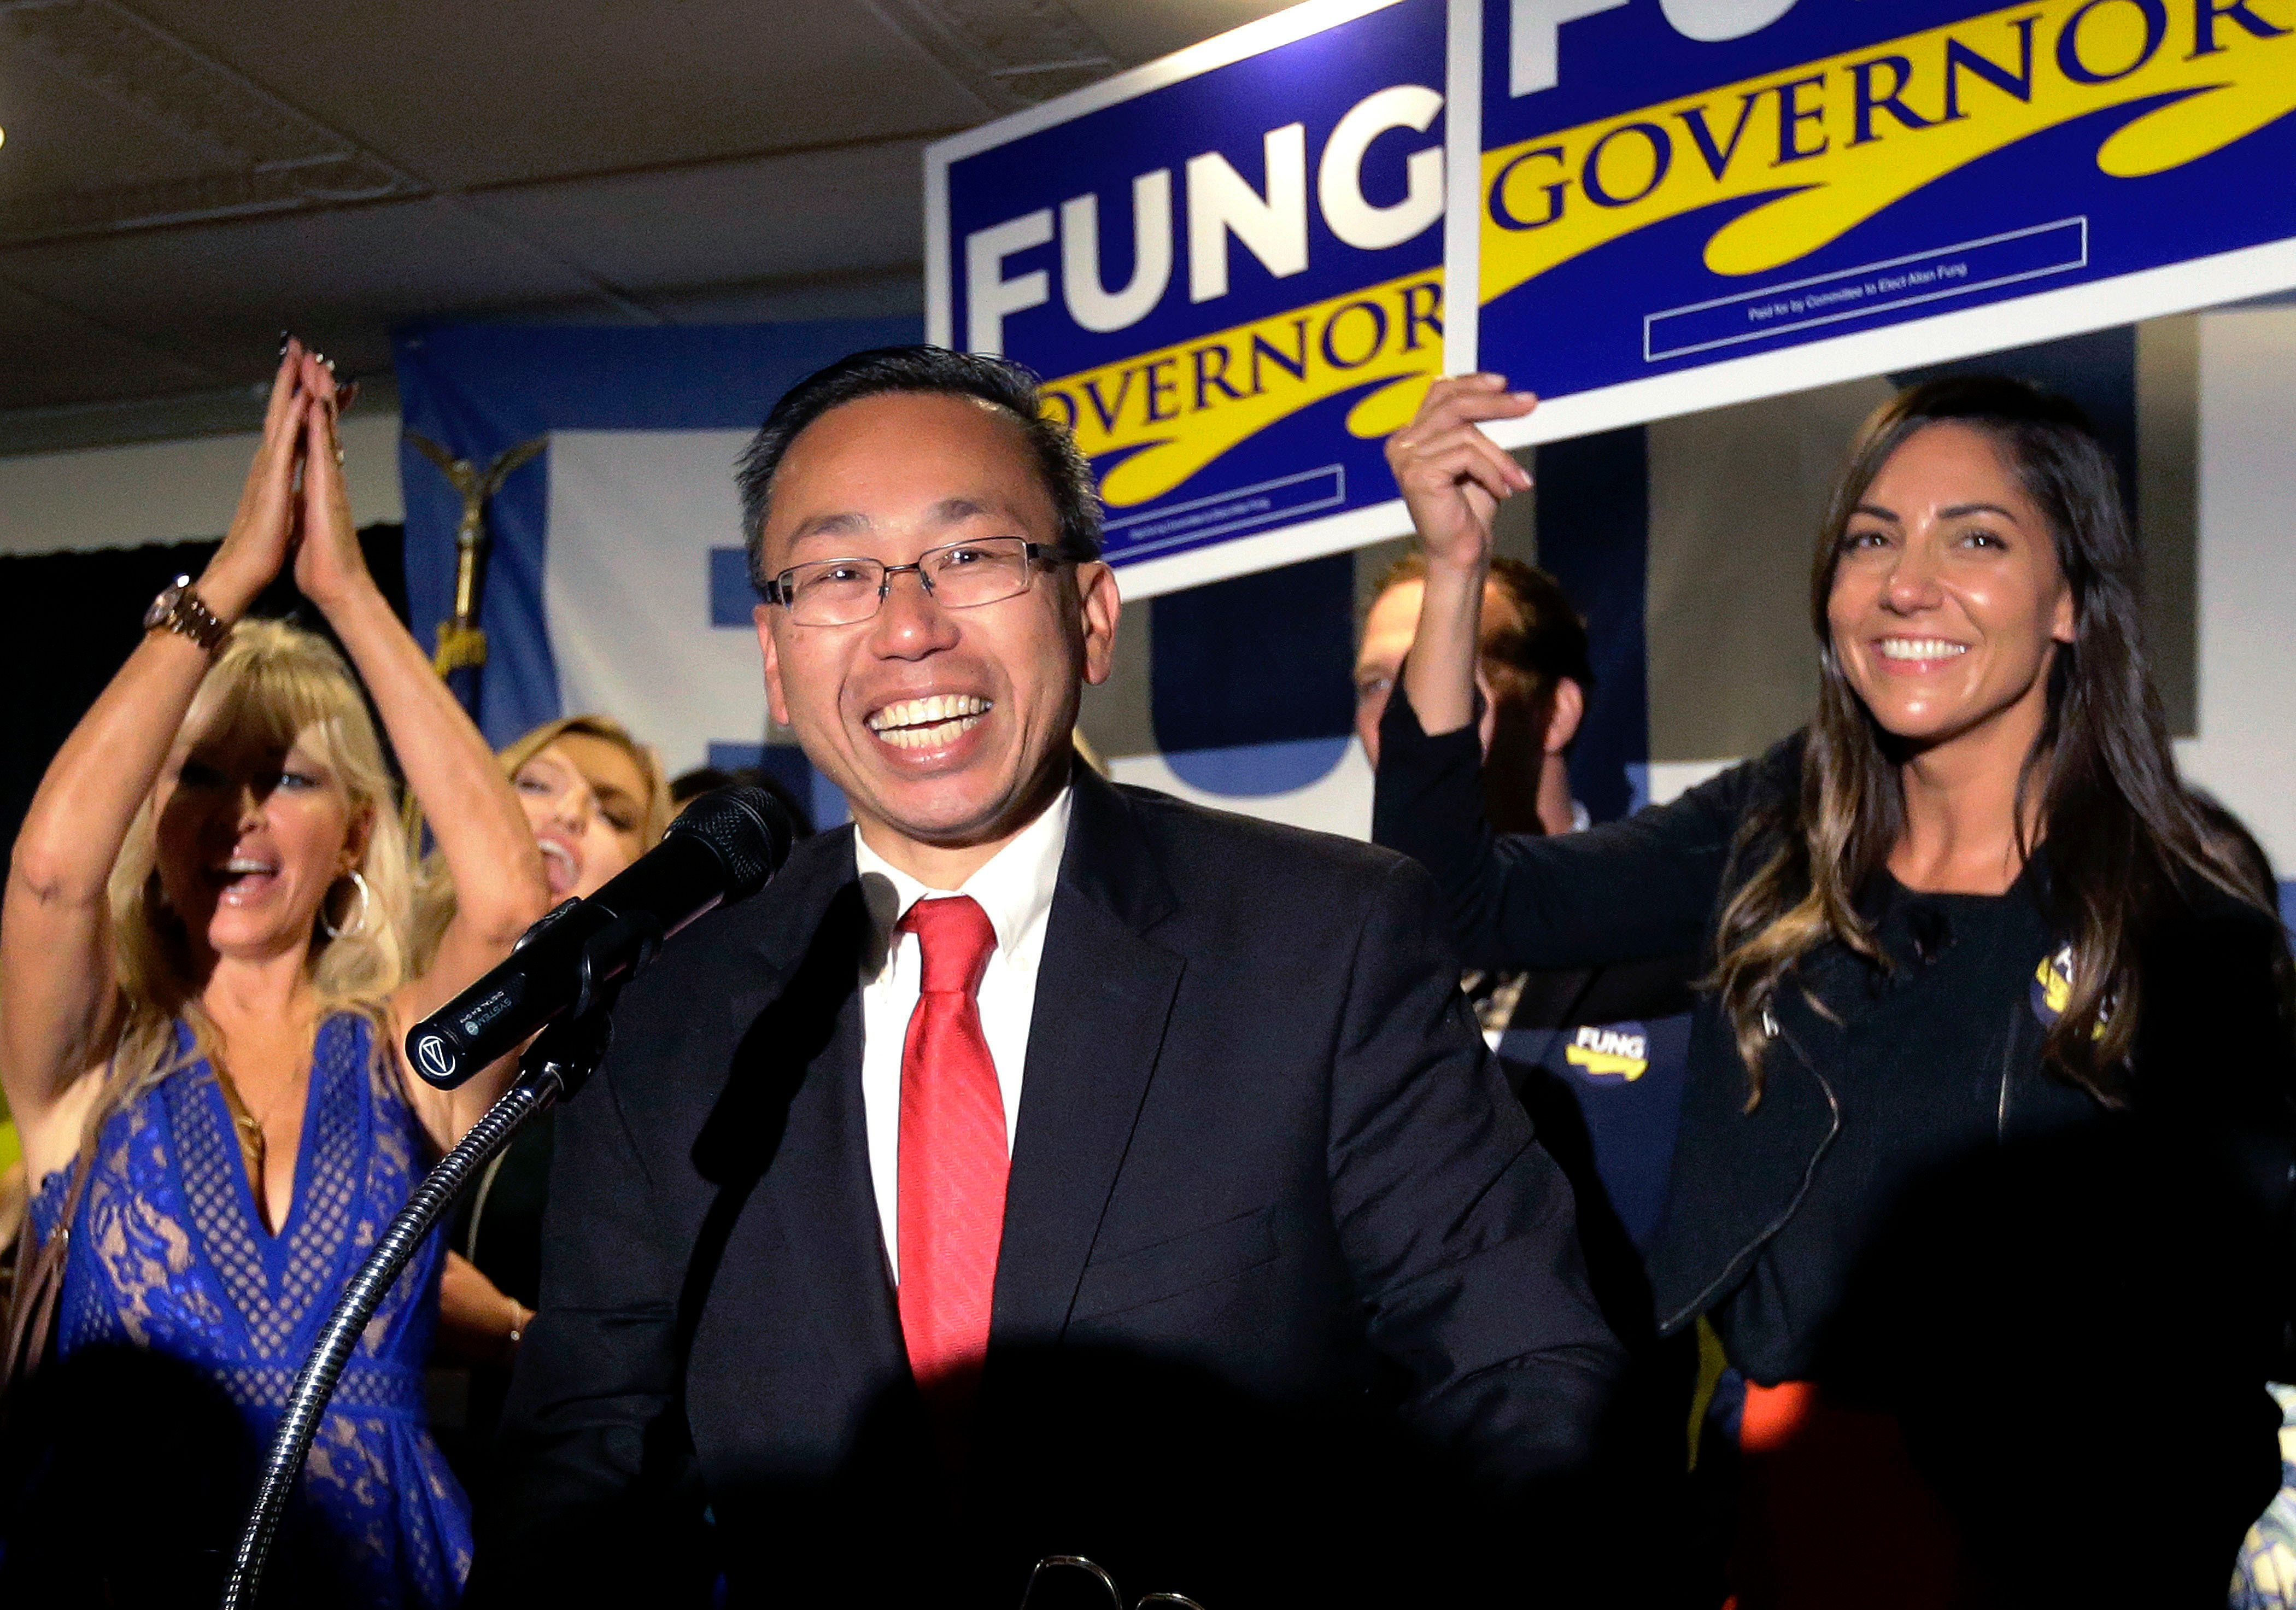 Cranston, R.I., Mayor Allan Fung, center, celebrates victory over R.I. House Minority Leader Patricia Morgan in the Republican gubernatorial primary, Wednesday, Sept. 12, 2018, in Cranston, R.I. (AP Photo/Steven Senne)